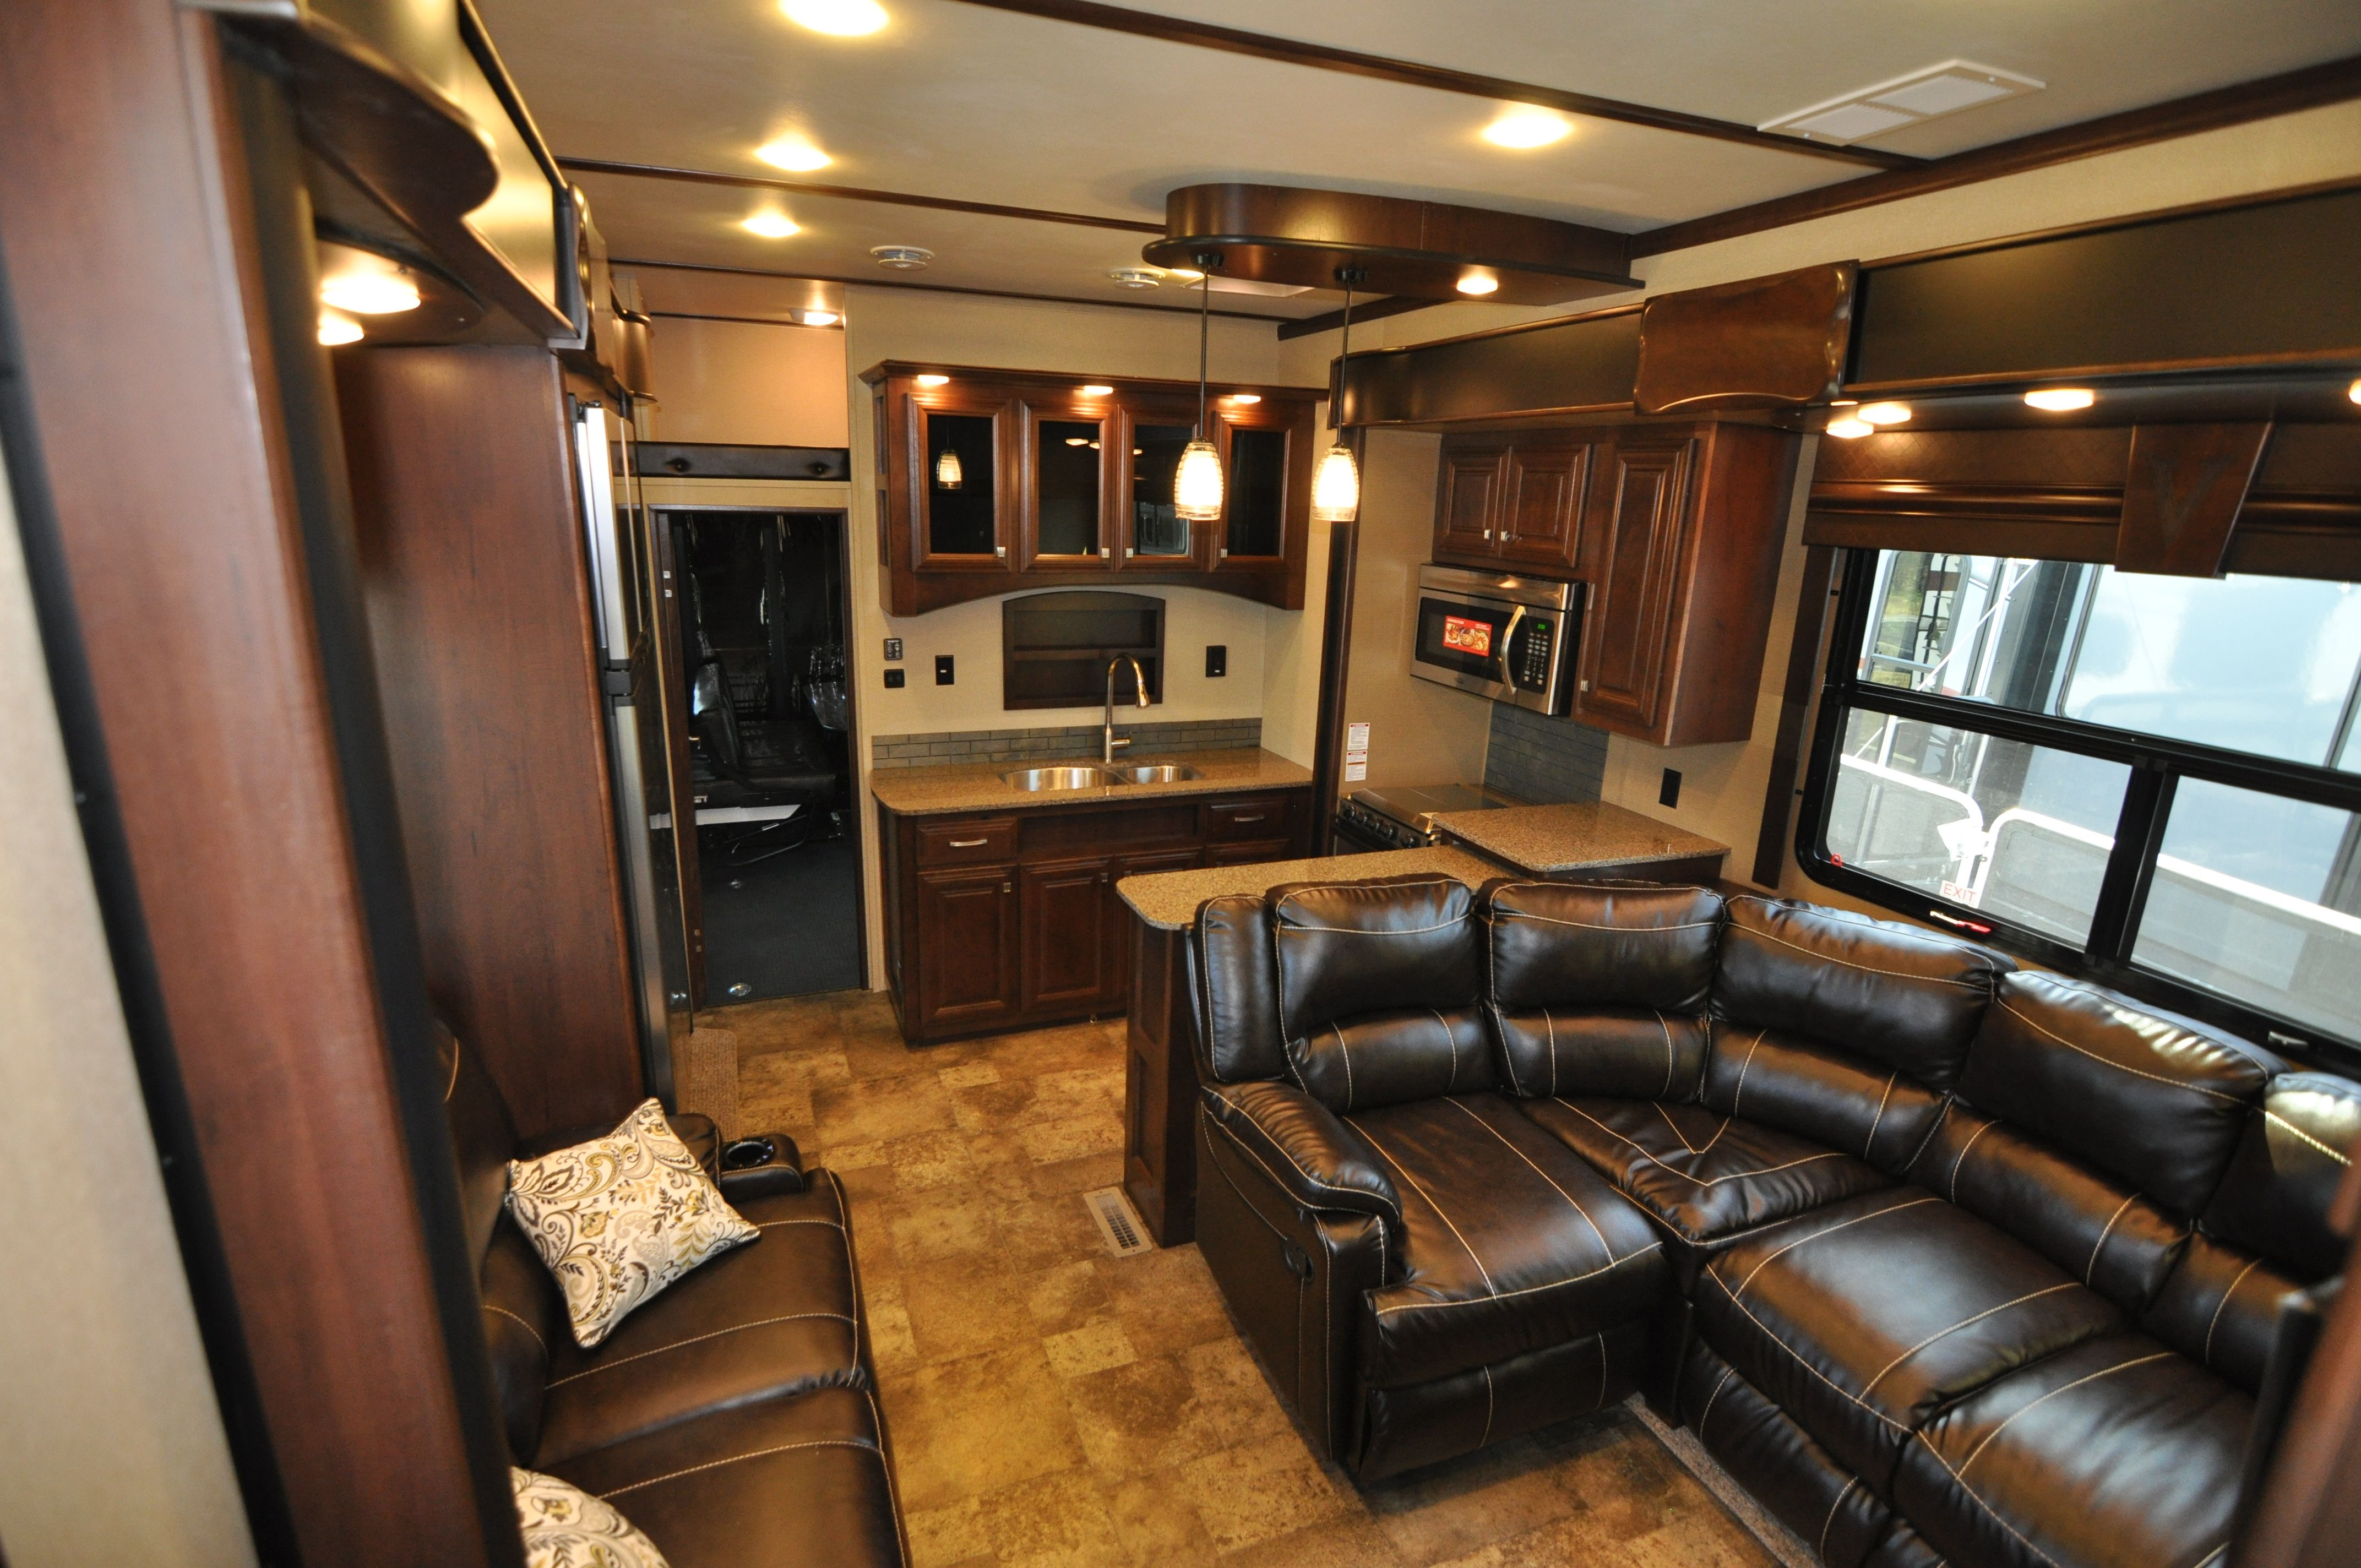 Living area of a 2015 Voltage model 3790 Fifth Wheel Toy Hauler wow